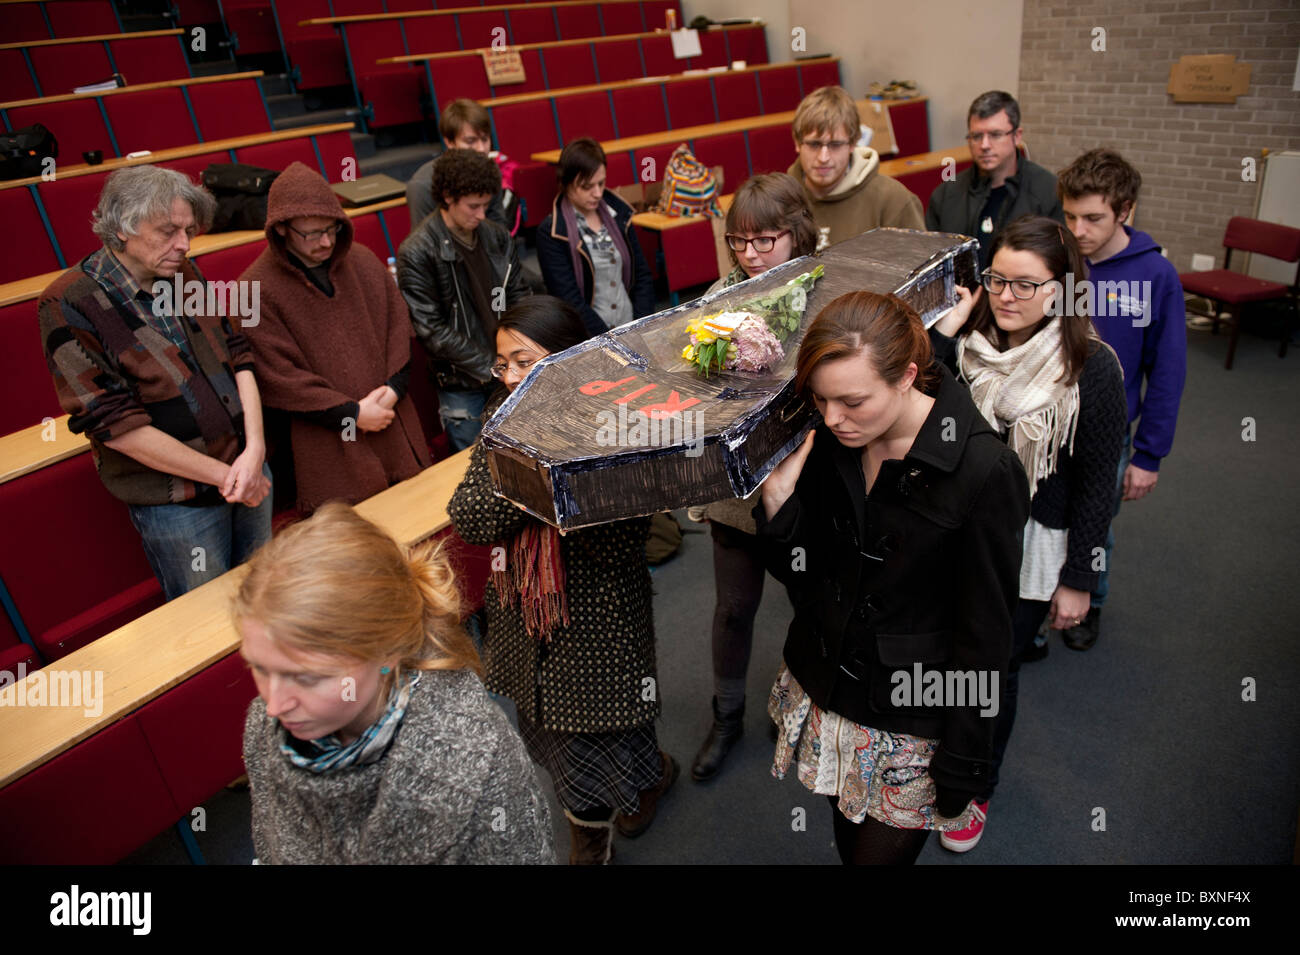 A mock funeral for the death of higher education staged by students at Aberystwyth University, wales UK - Stock Image